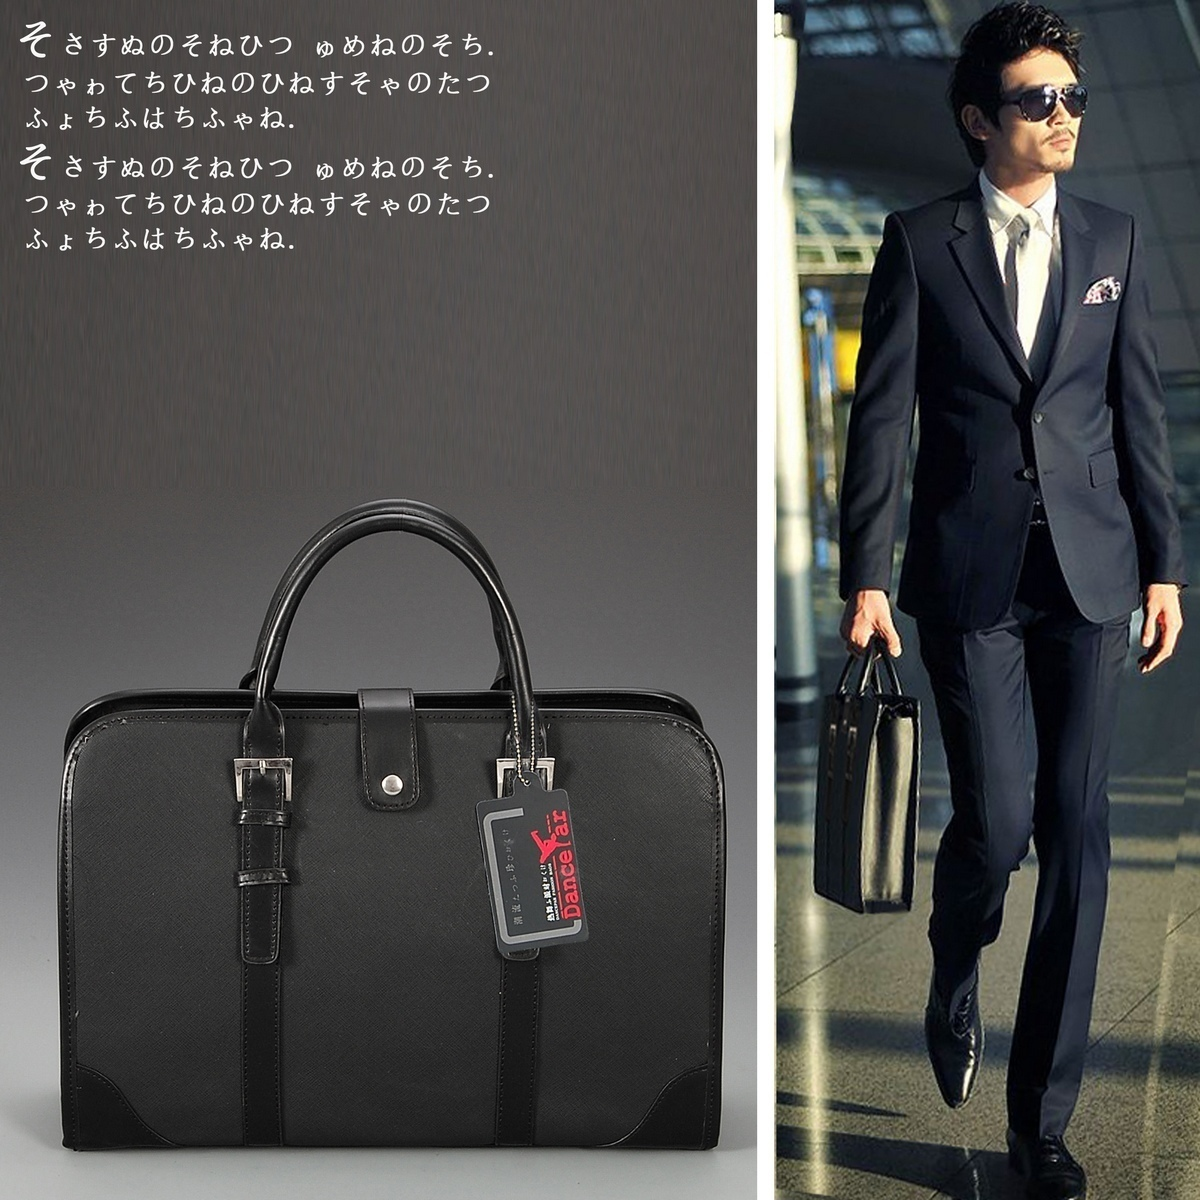 2013 men's handbag 12 square meter briefcase messenger bag casual ...